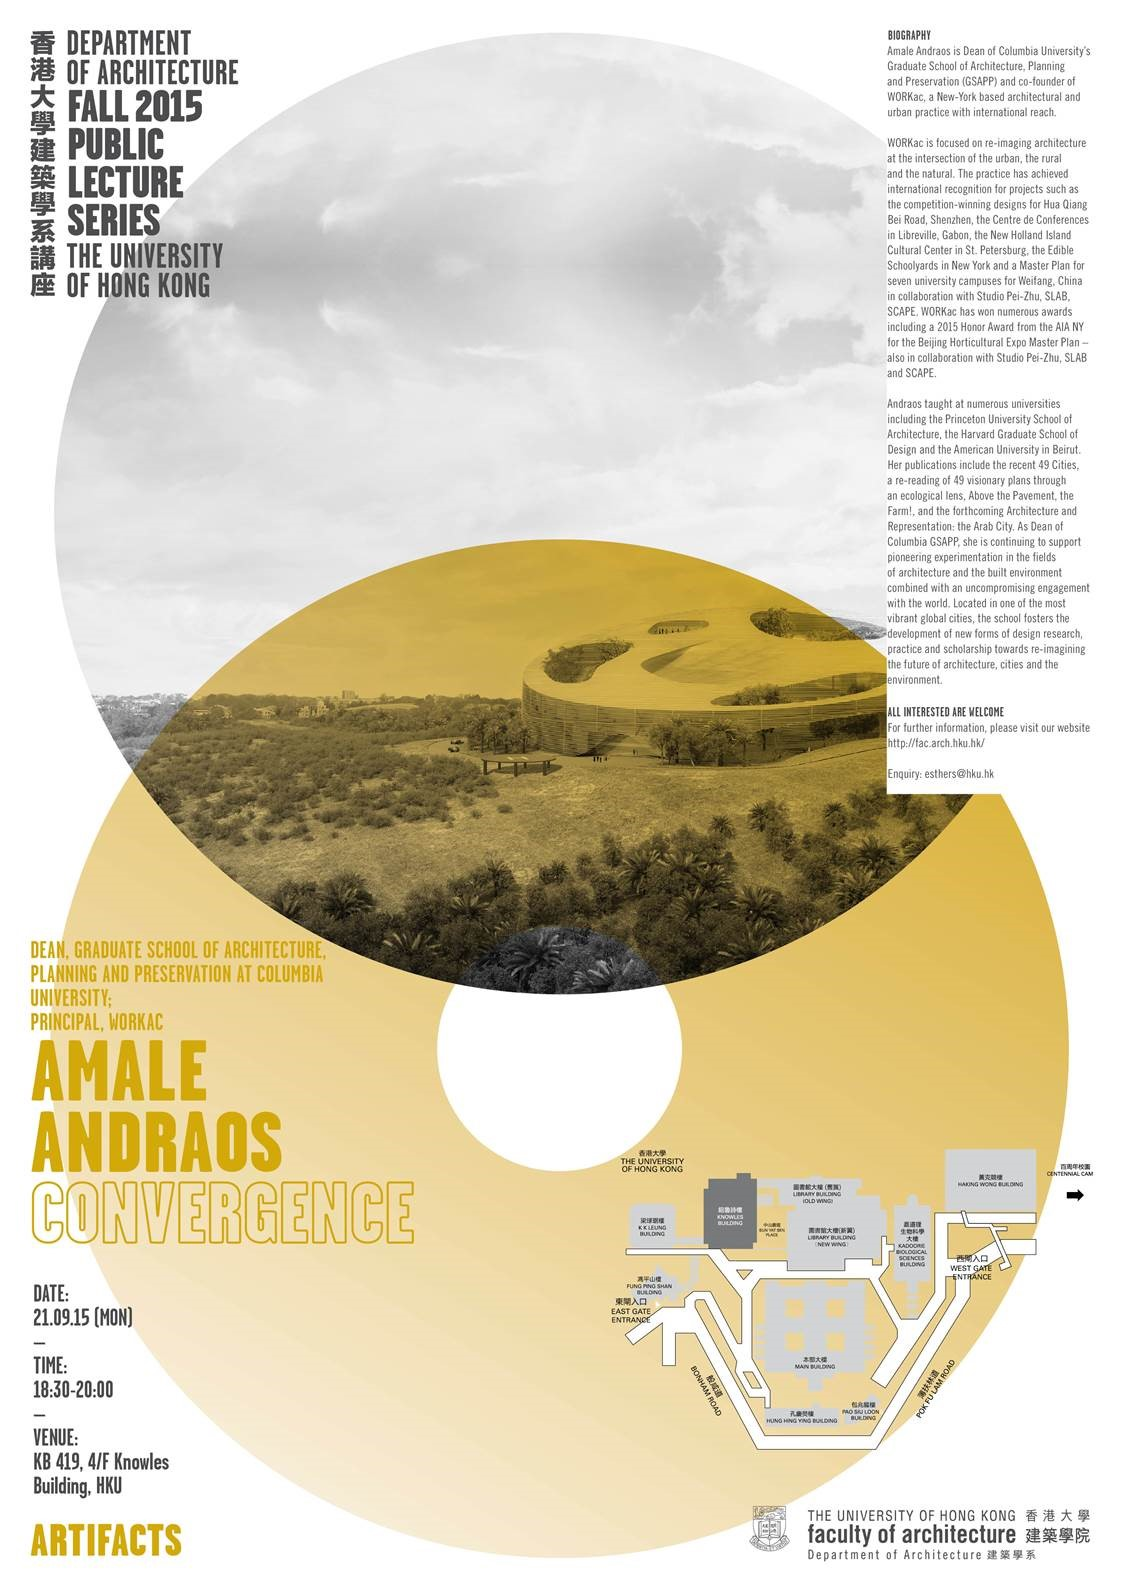 Amale Andraos